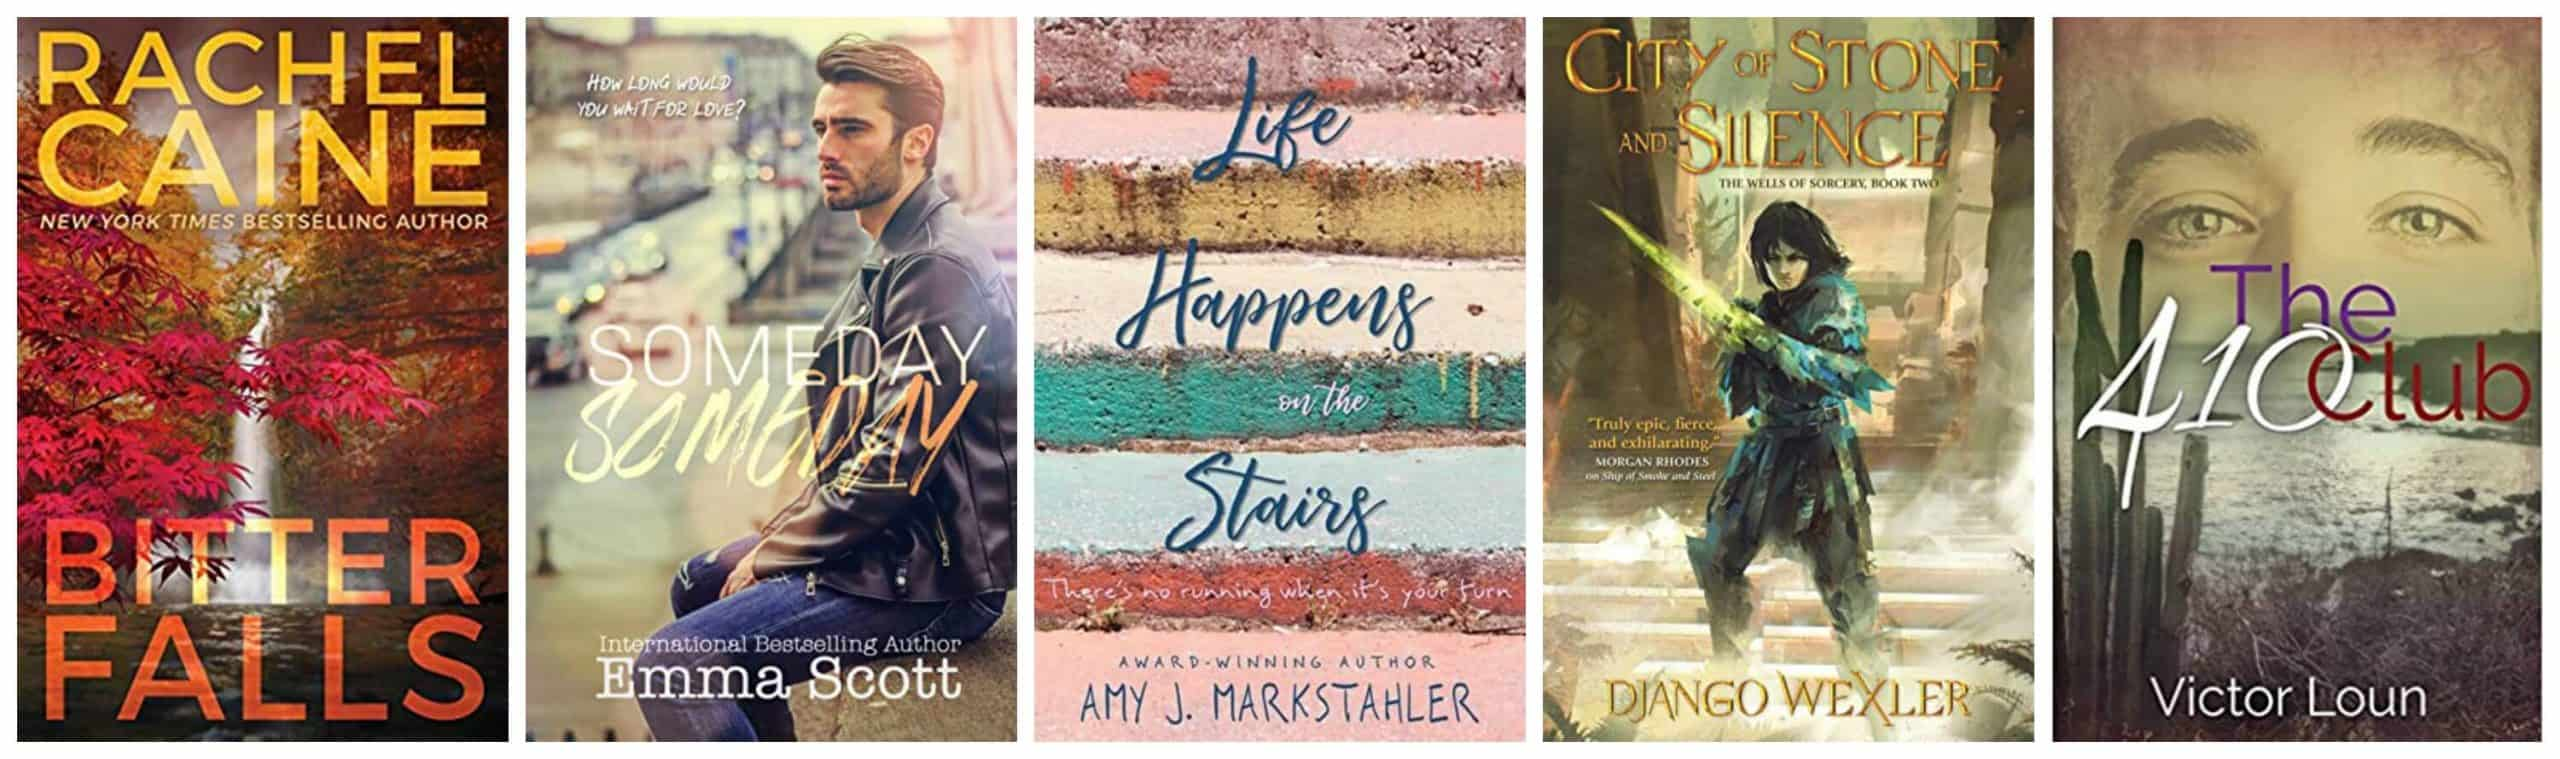 stacking the shelves book haul week 187